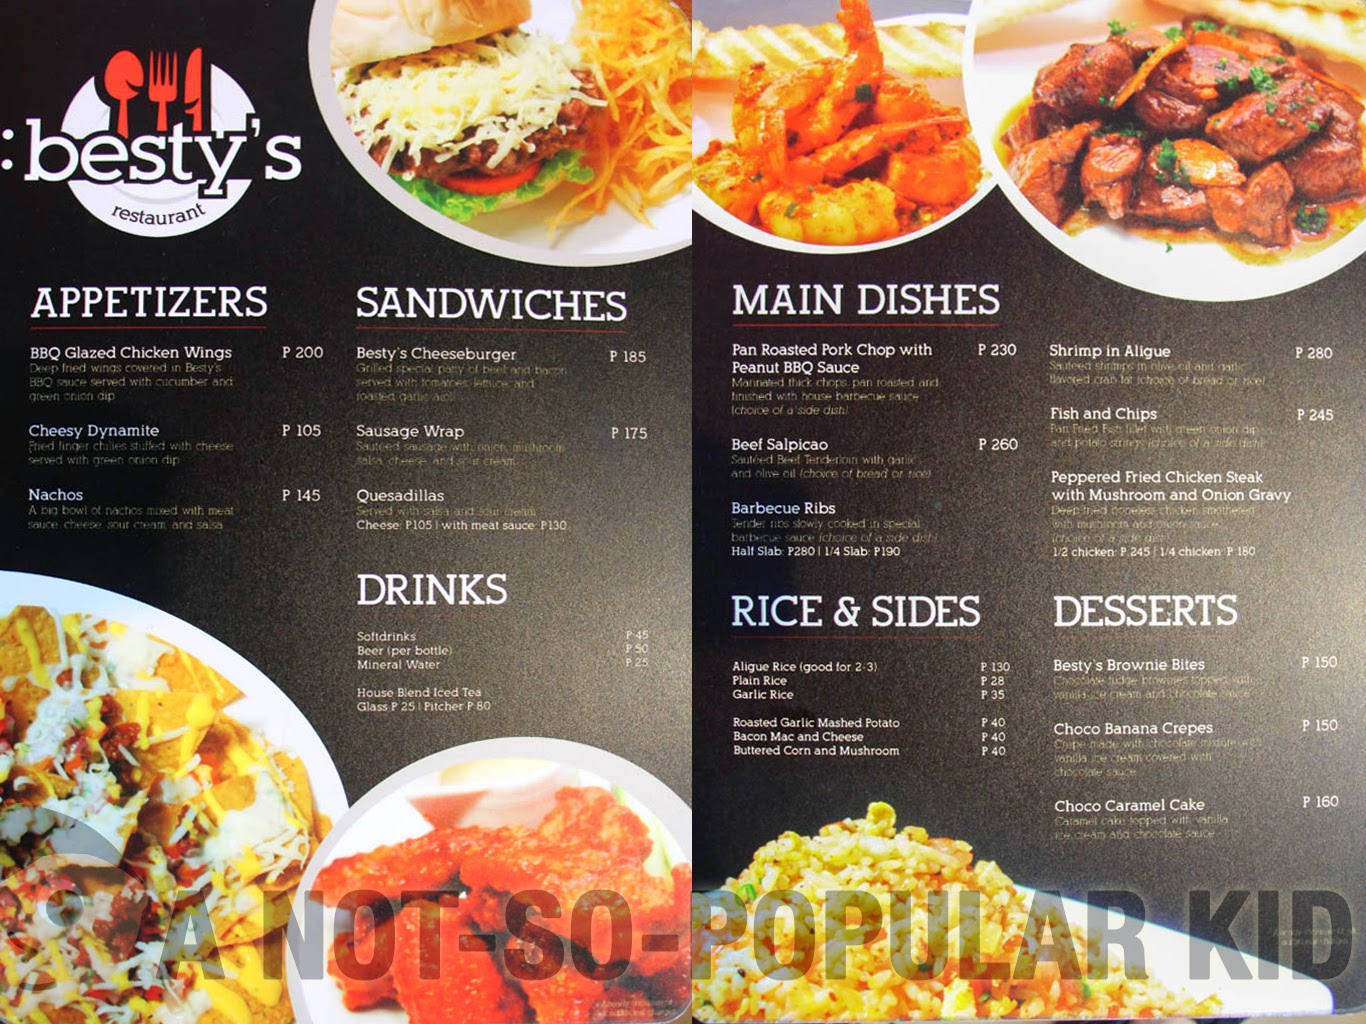 Besty's Restaurant - Menu and Prices